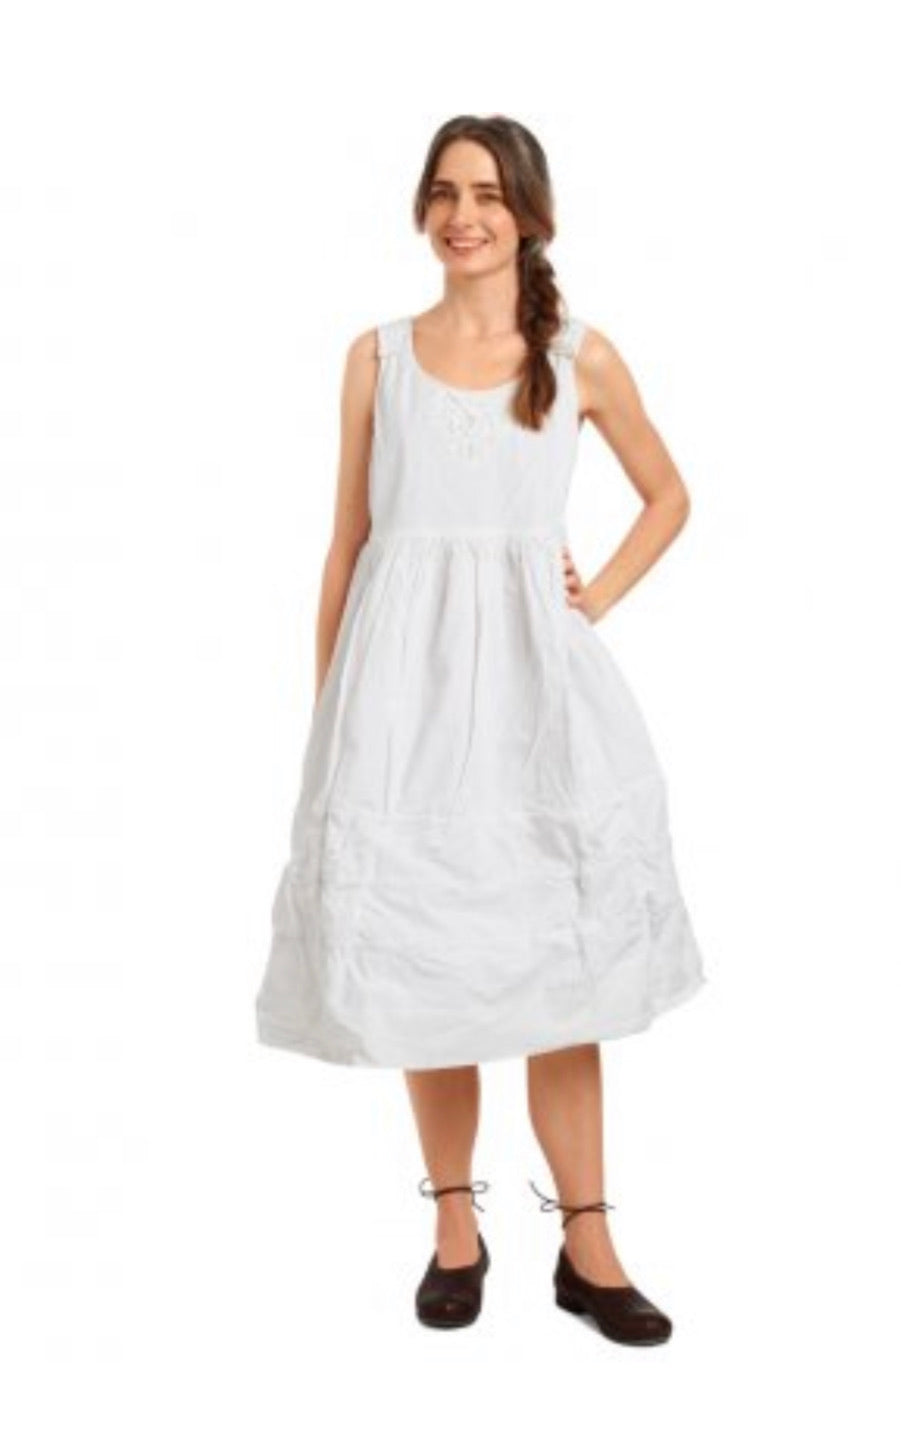 Ewa i Walla Crisp White Cotton Dress 55650 SS20